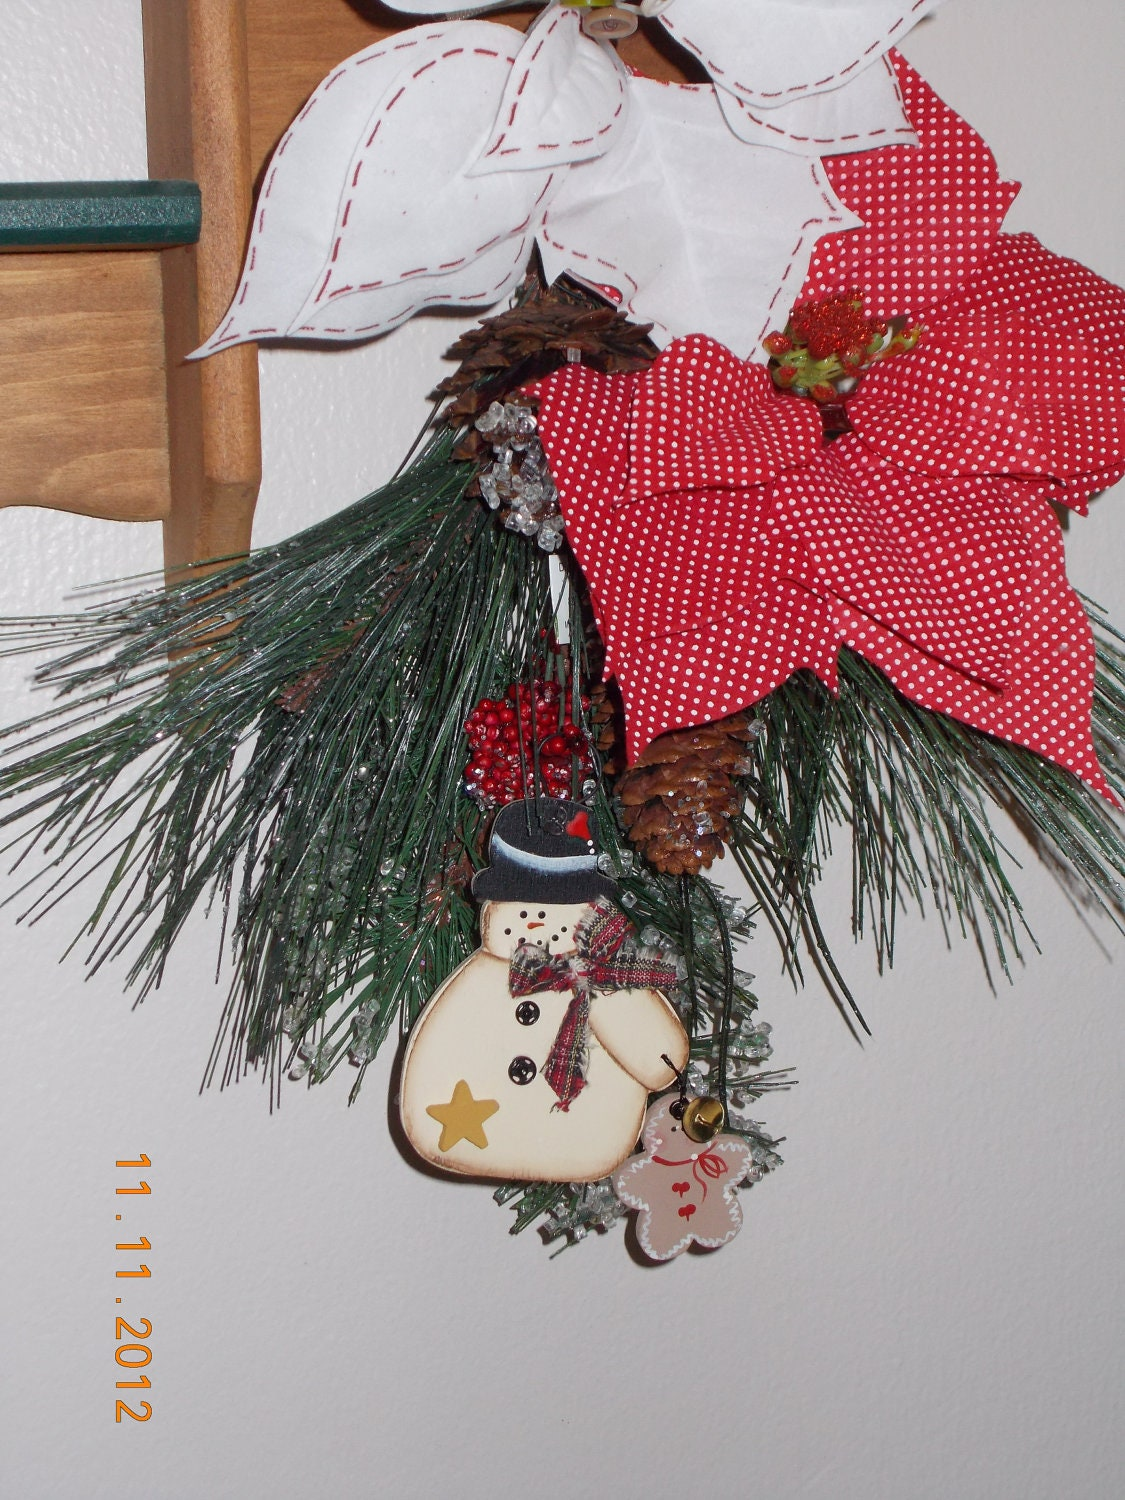 Snowman gingerbread ornament, gift tags, holiday decoration, handmade, free shipping,made in USA